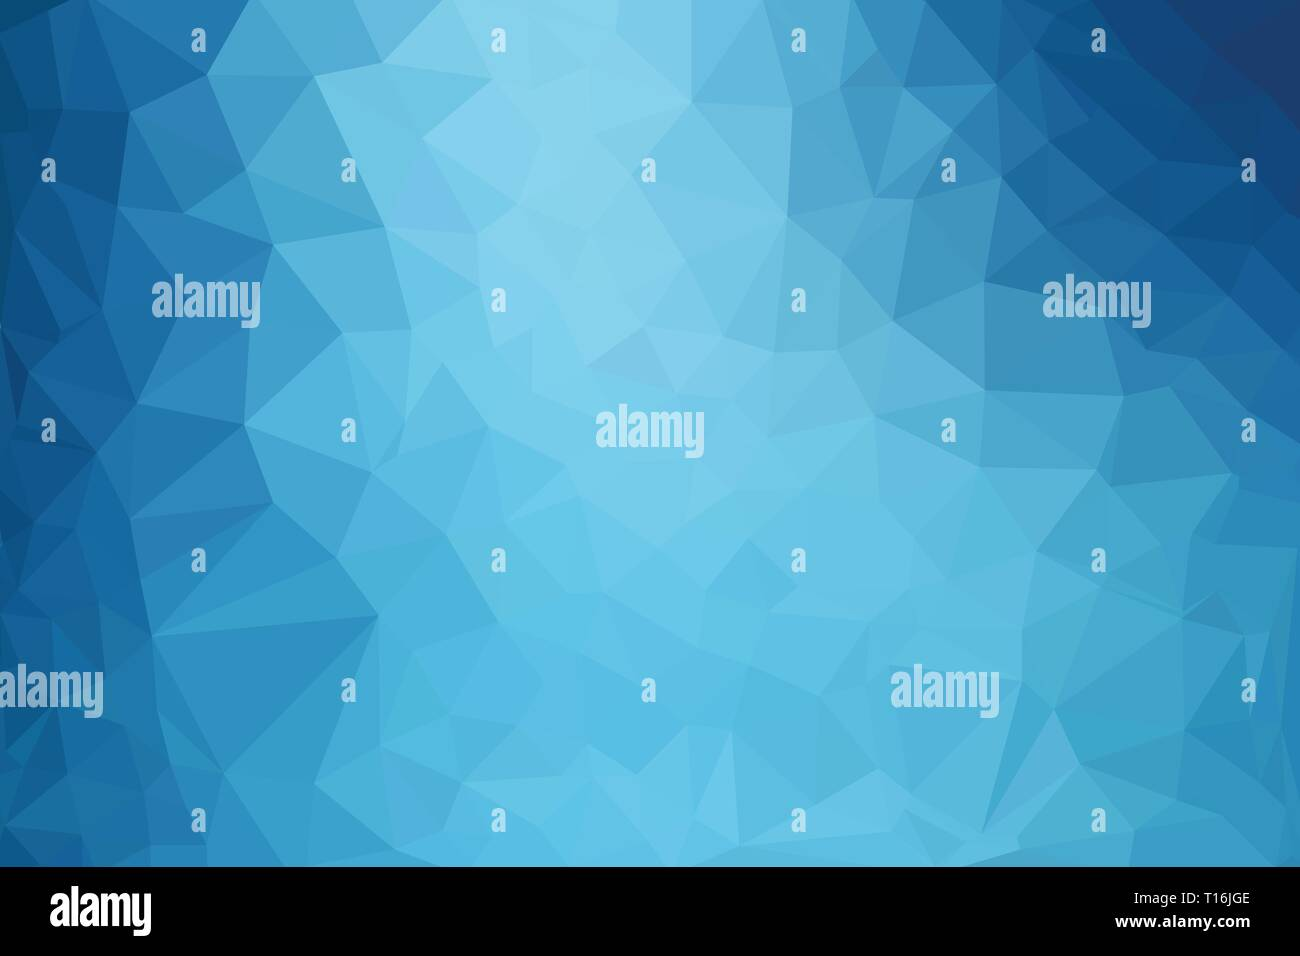 Élégant blue abstract background vector polygone faible Photo Stock